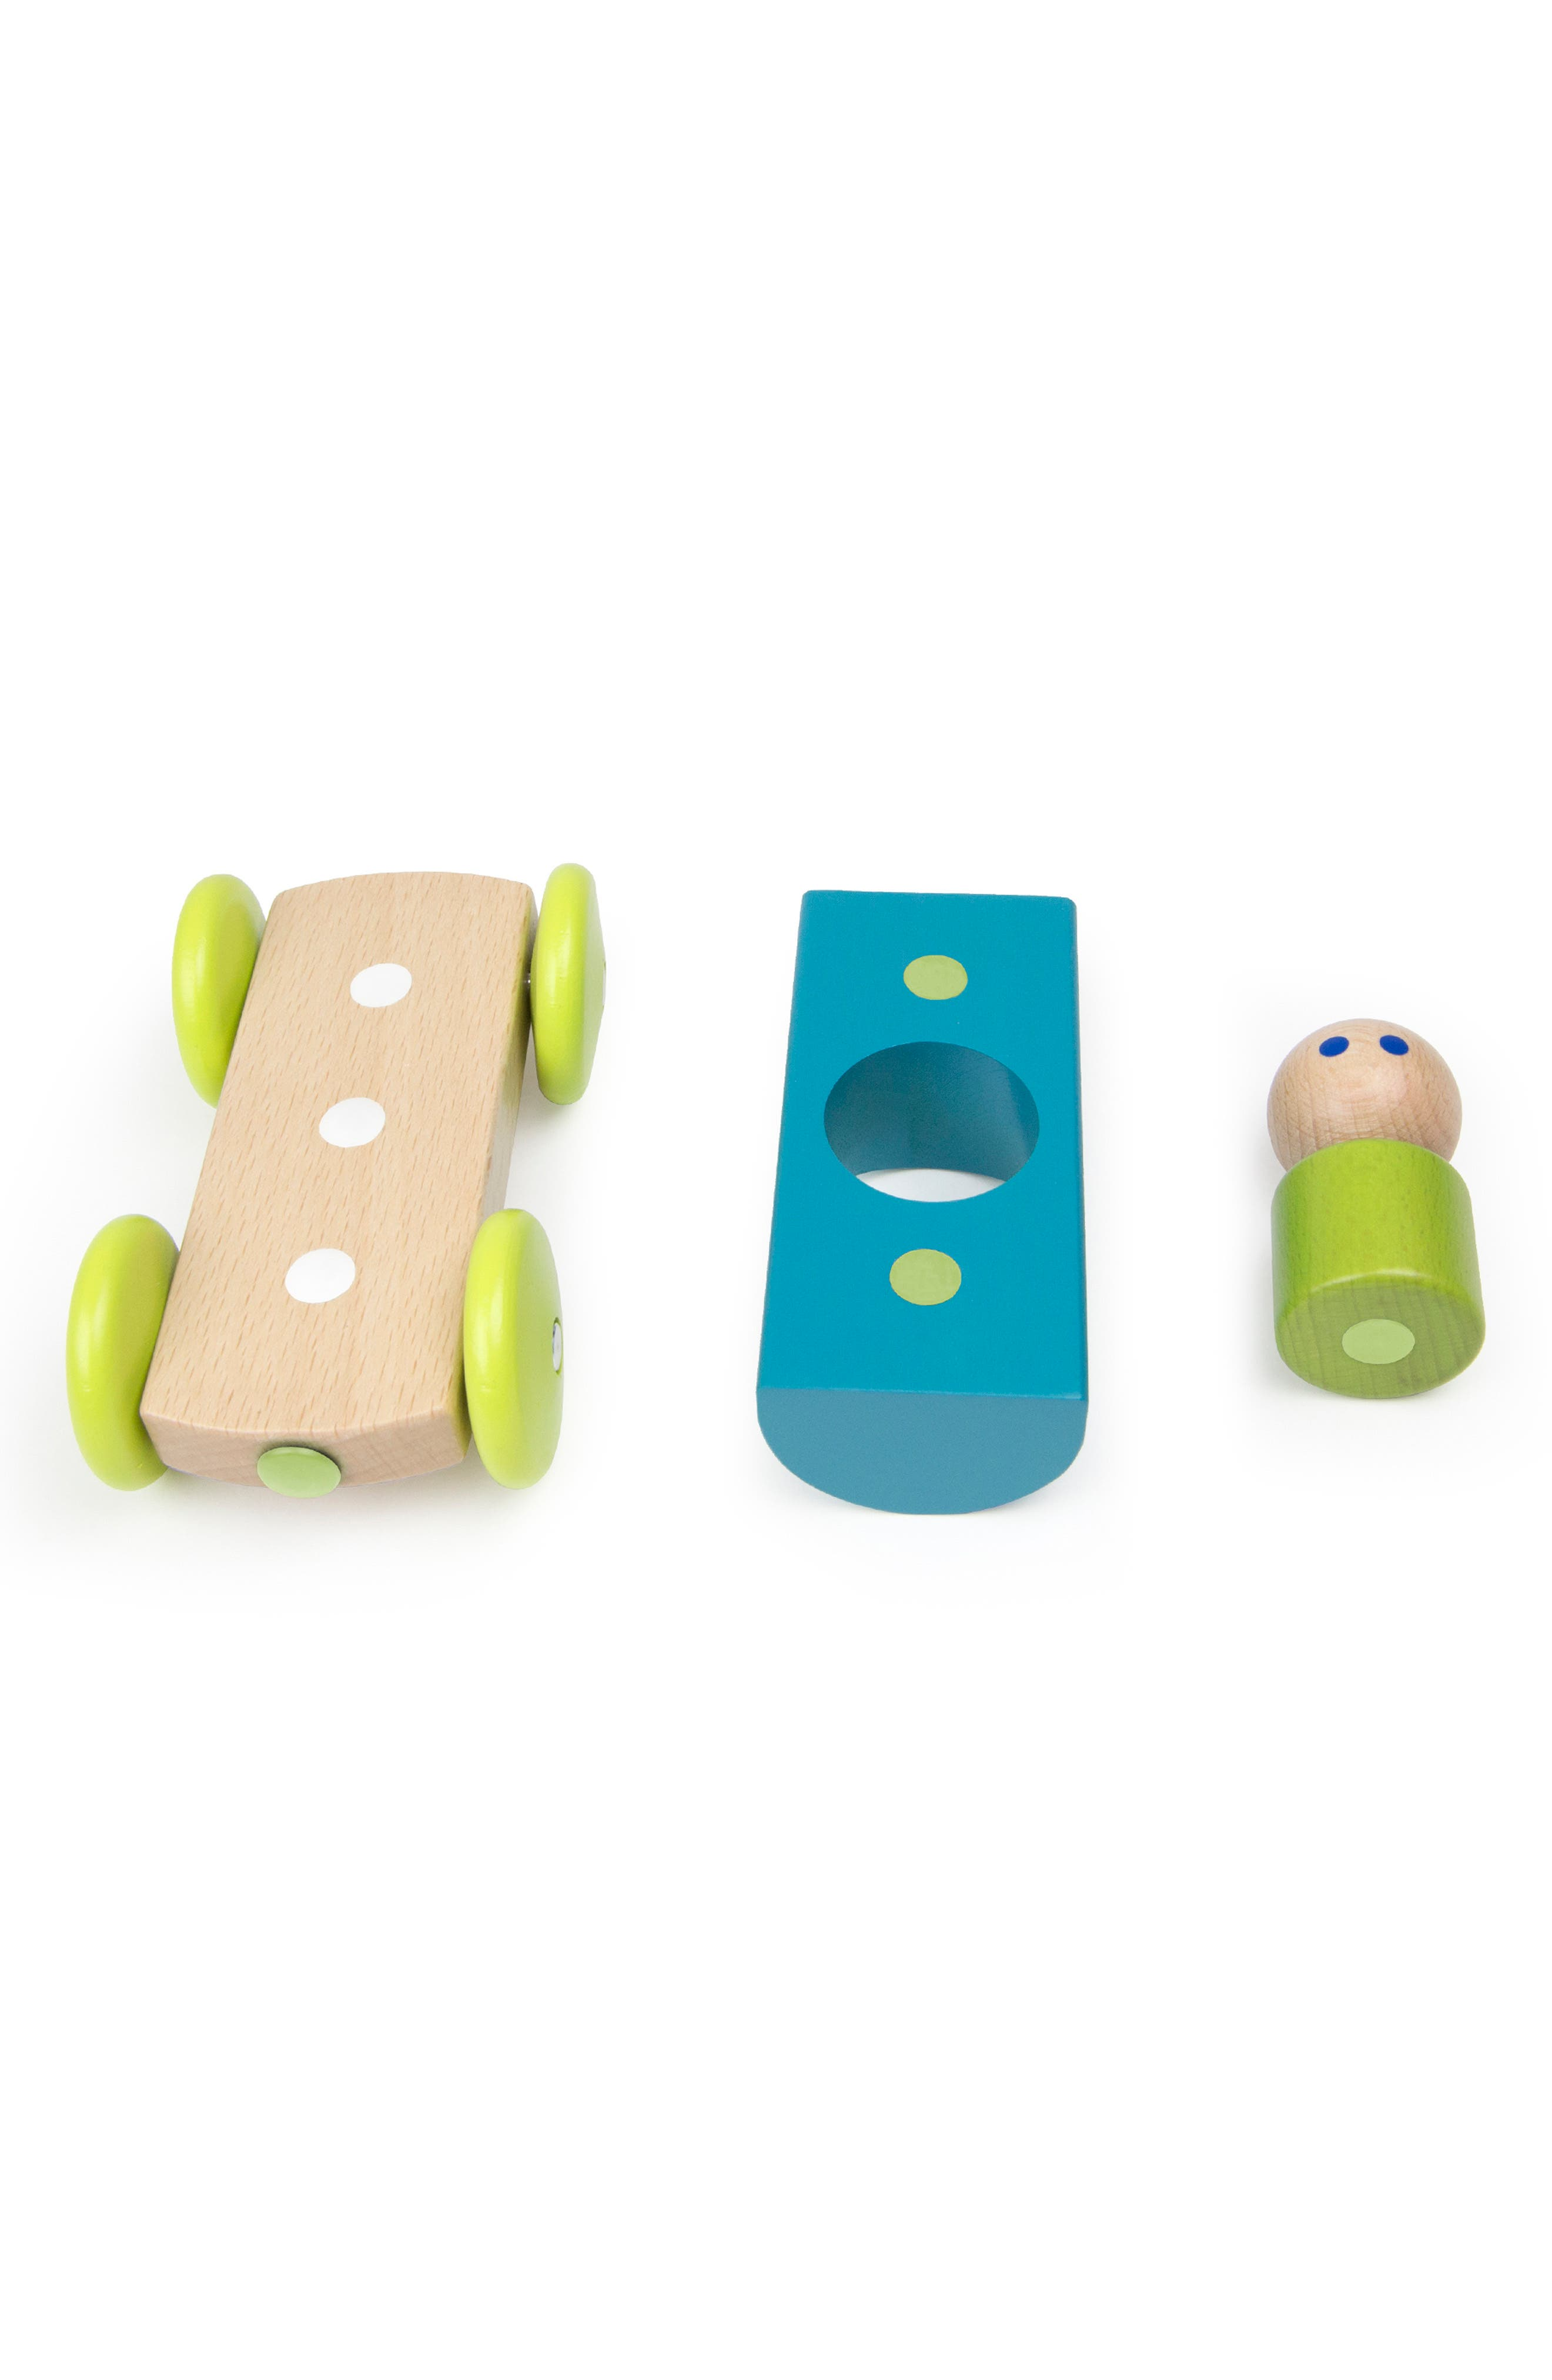 Half Pipe Magnetic Racer Toy,                             Alternate thumbnail 3, color,                             960